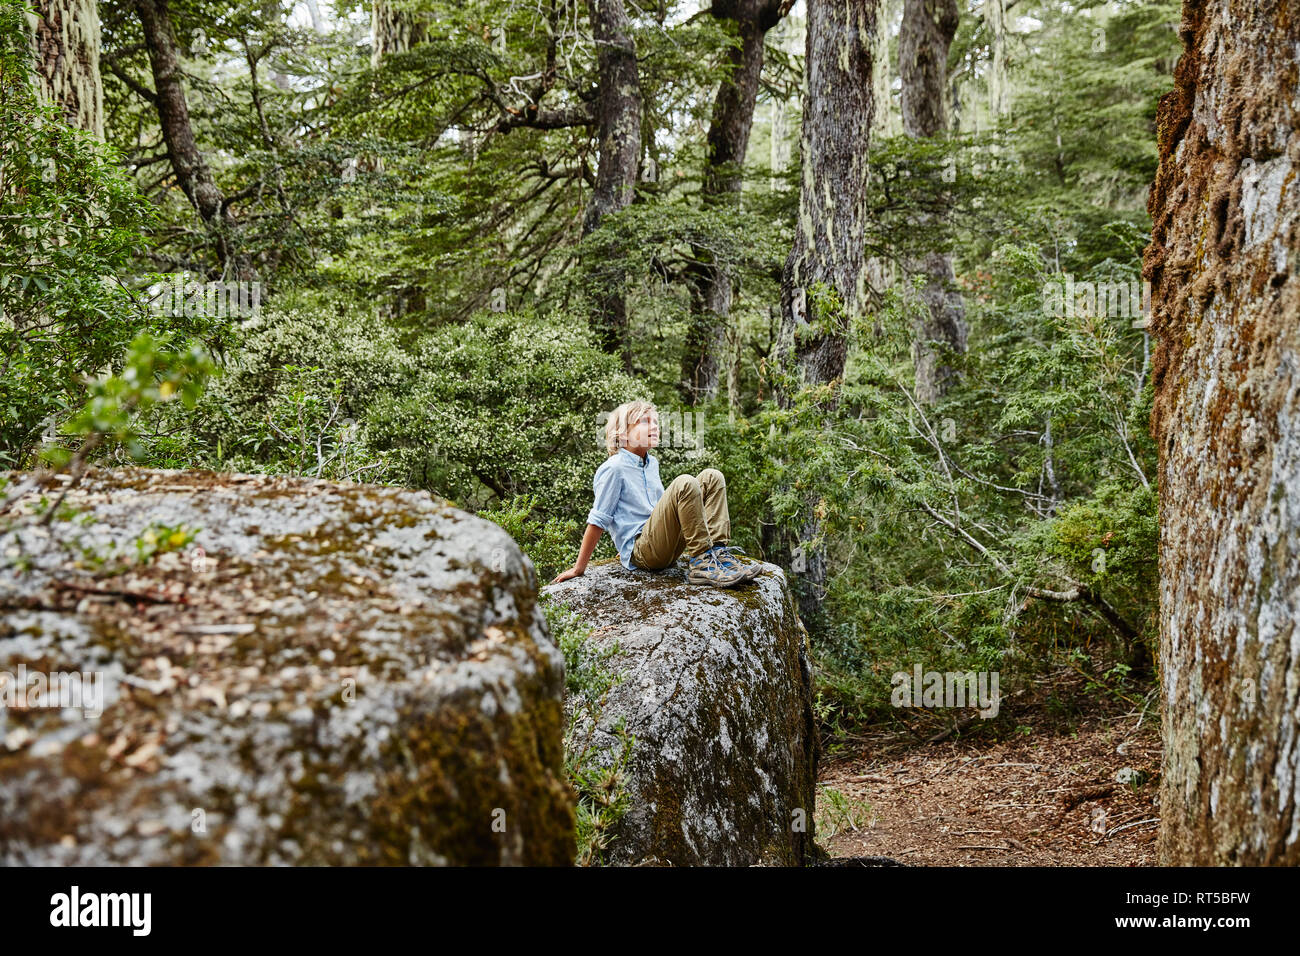 Chile, Puren, Nahuelbuta National Park, boy sitting on a rock in forest - Stock Image